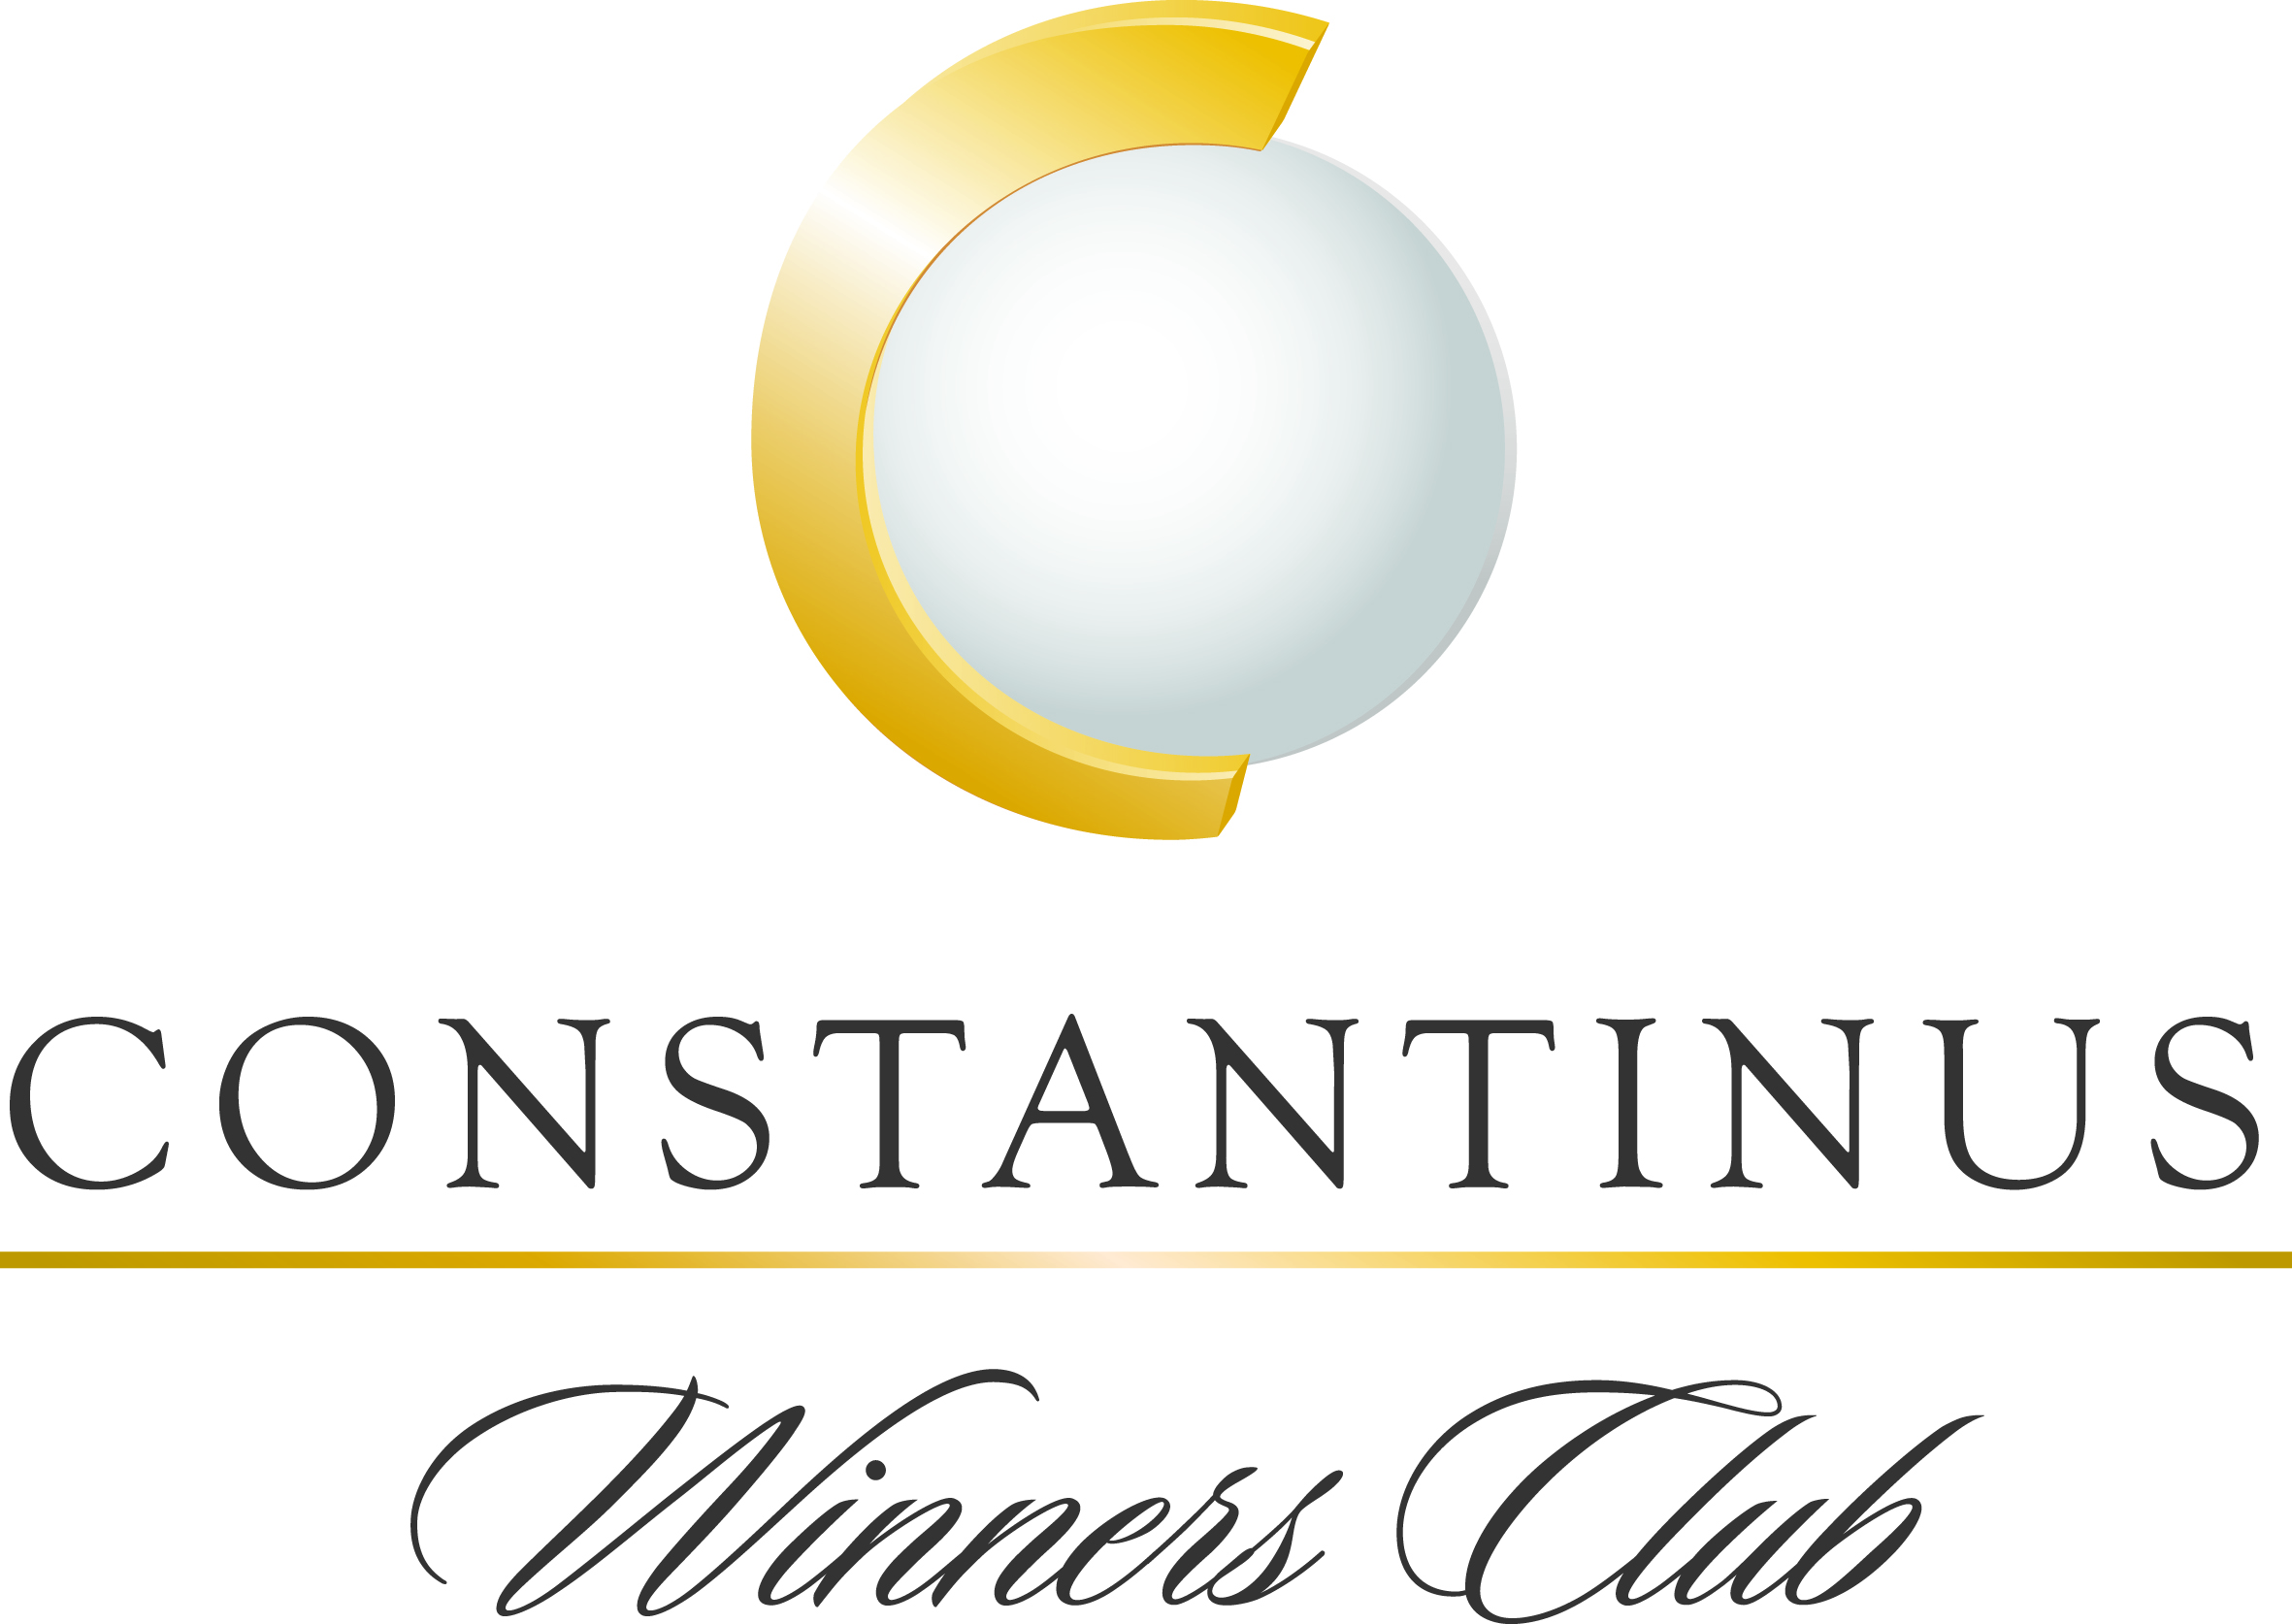 Constantinus Winners Club-Logo